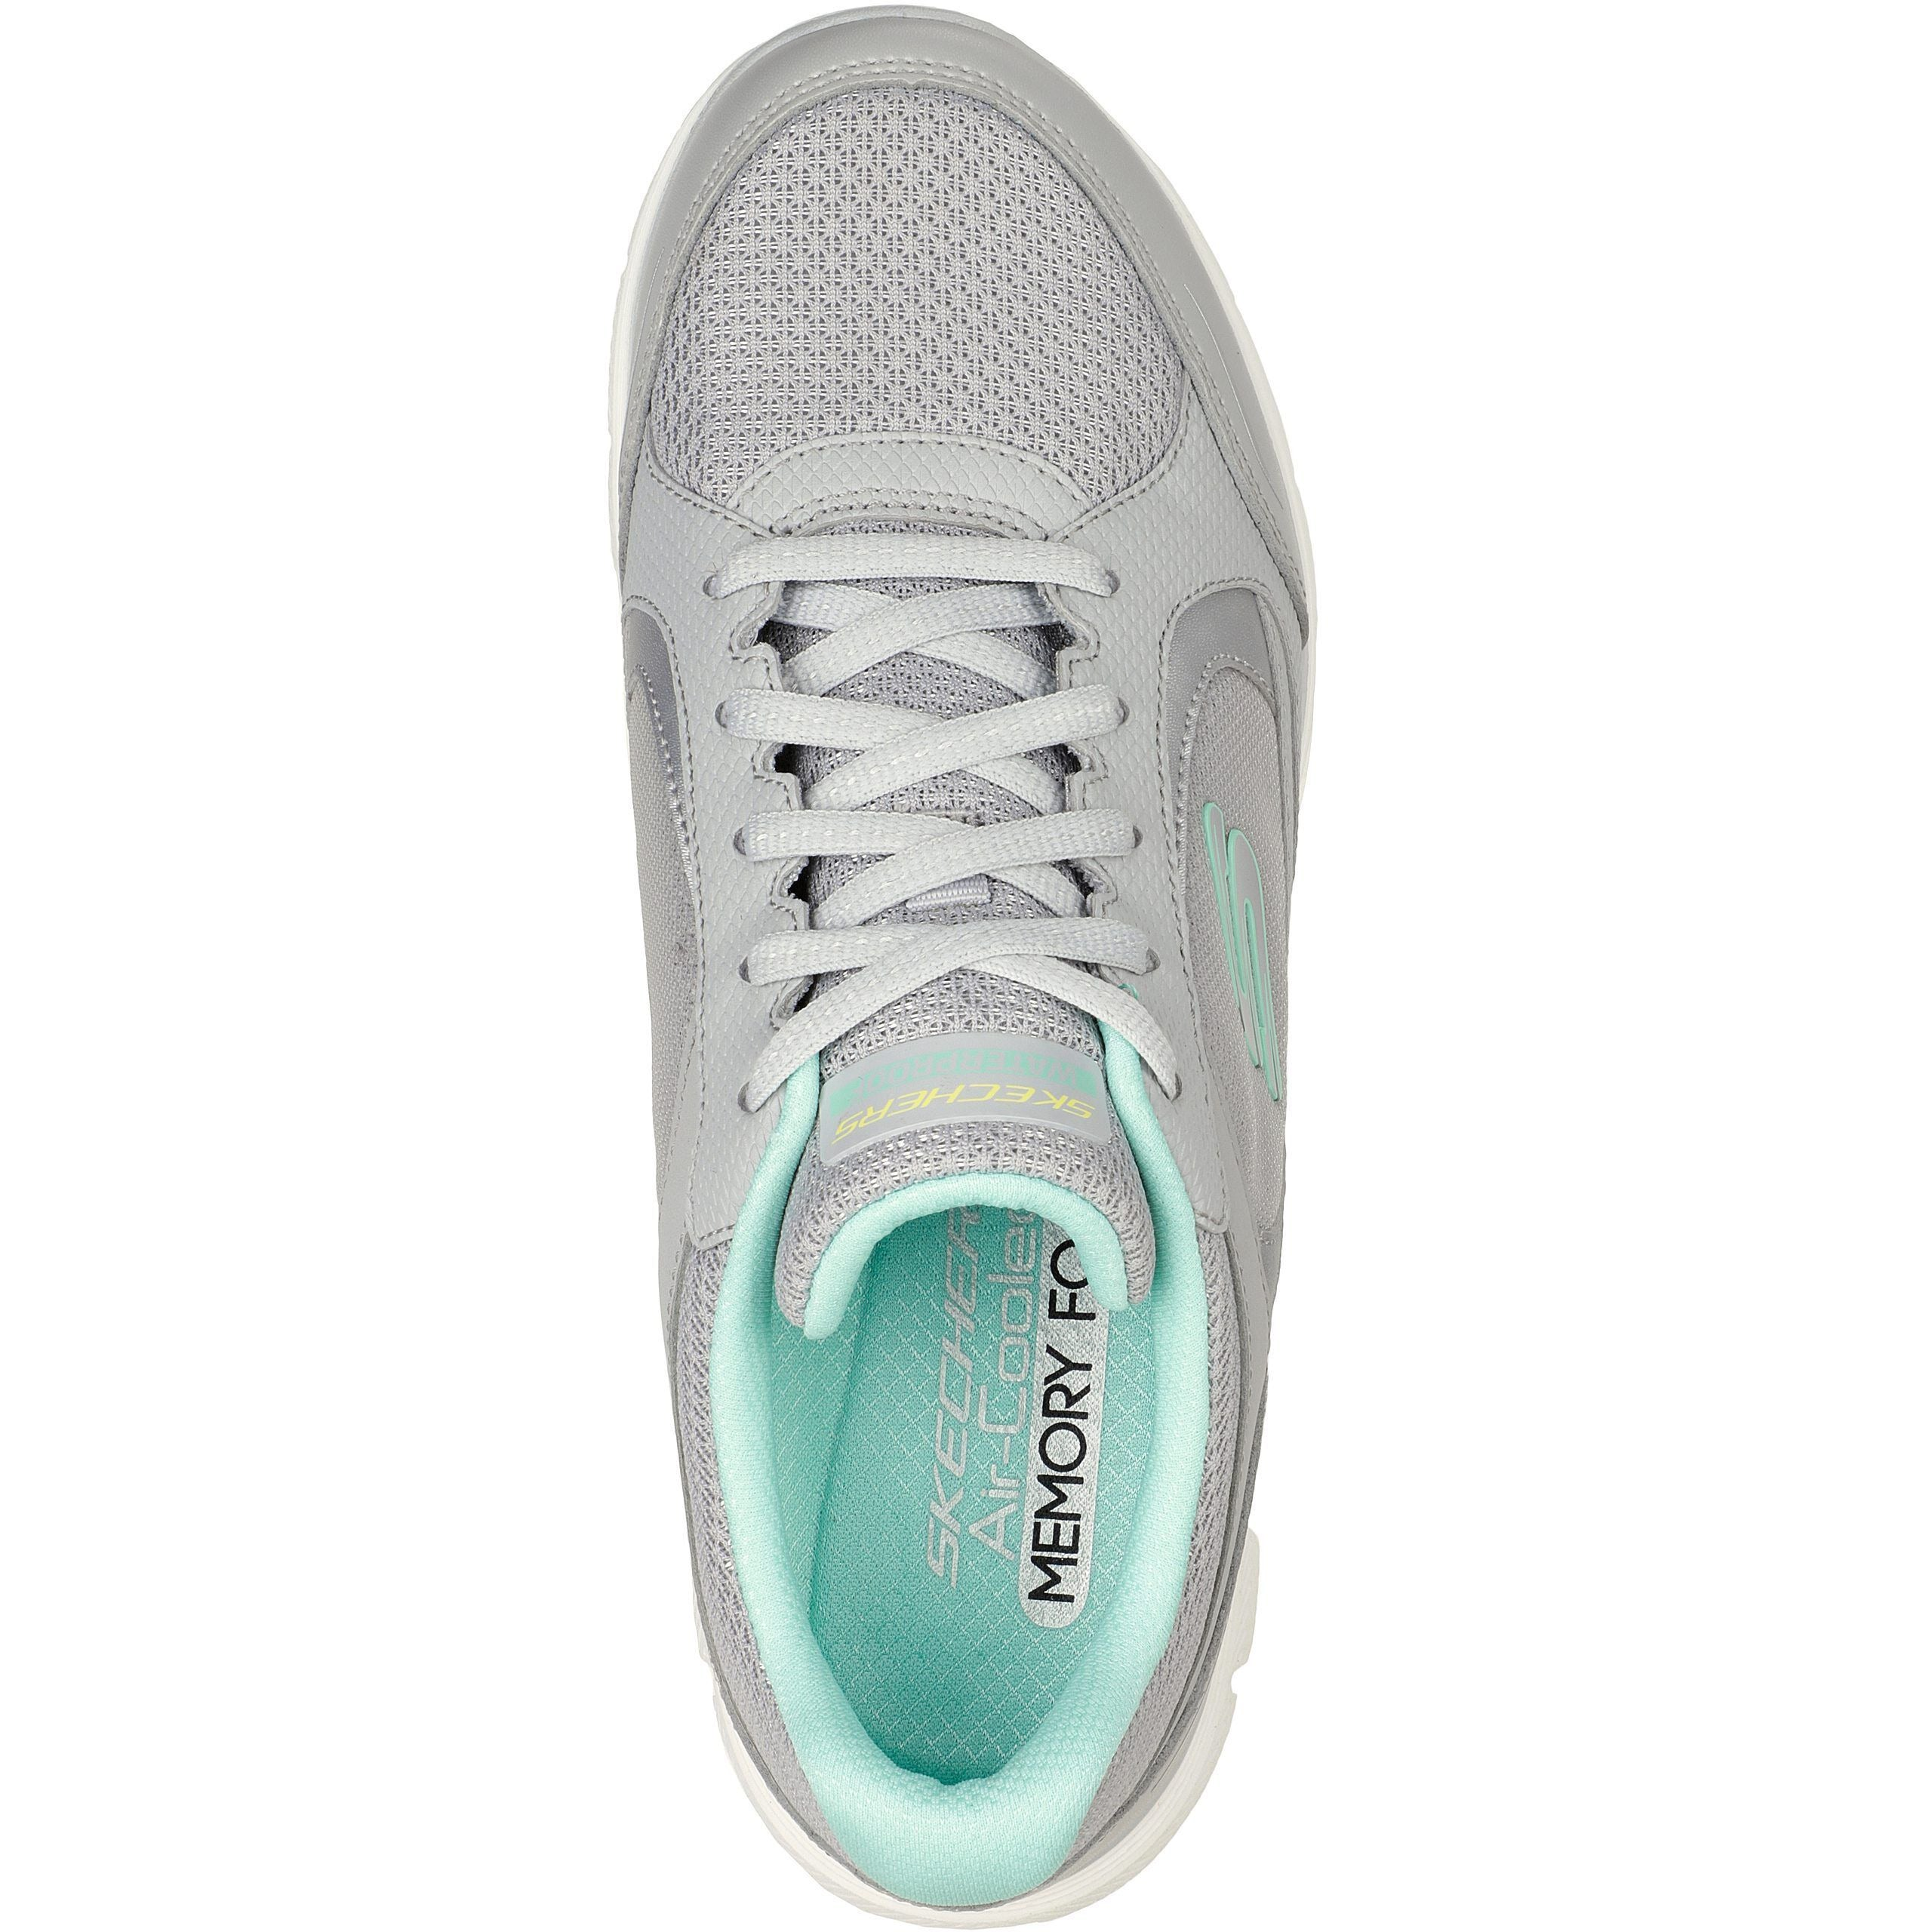 SKECHERS FLEX APPEAL 4.0 - TRUE CLARITY GREY/MINT - getset-footwear.myshopify.com